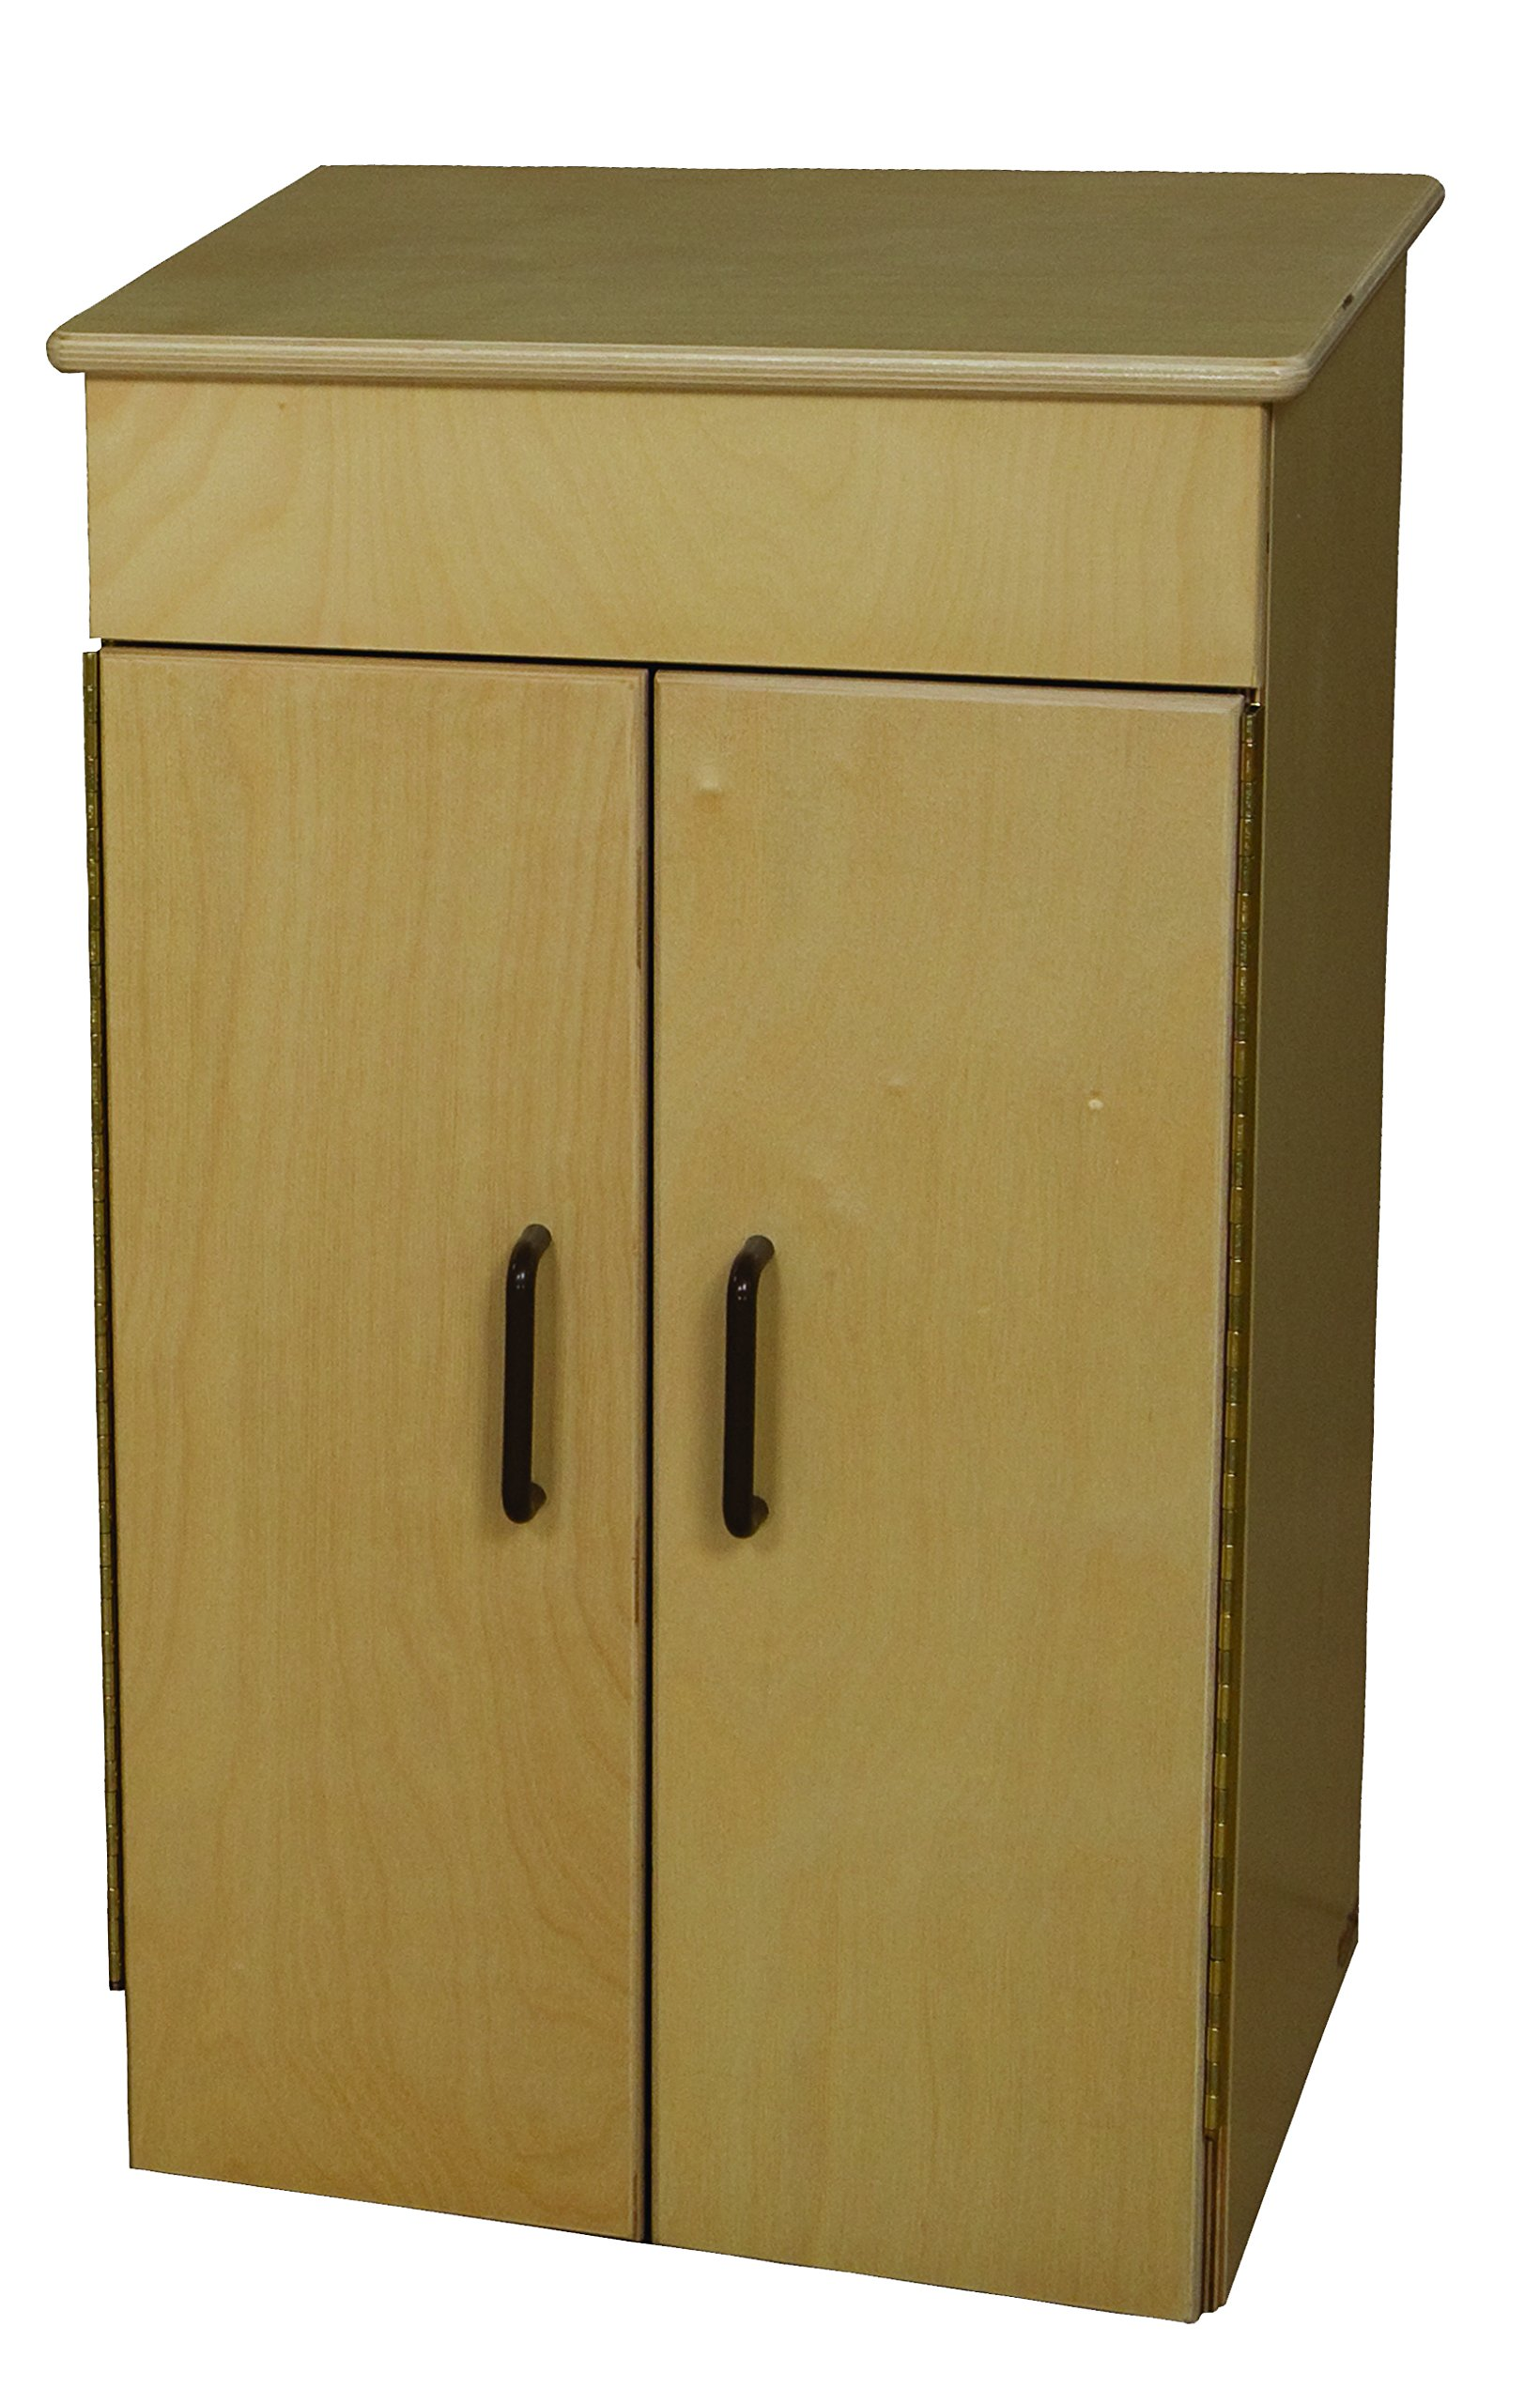 Wood Designs 20400BN Tot Refrigerator with Brown Knobs